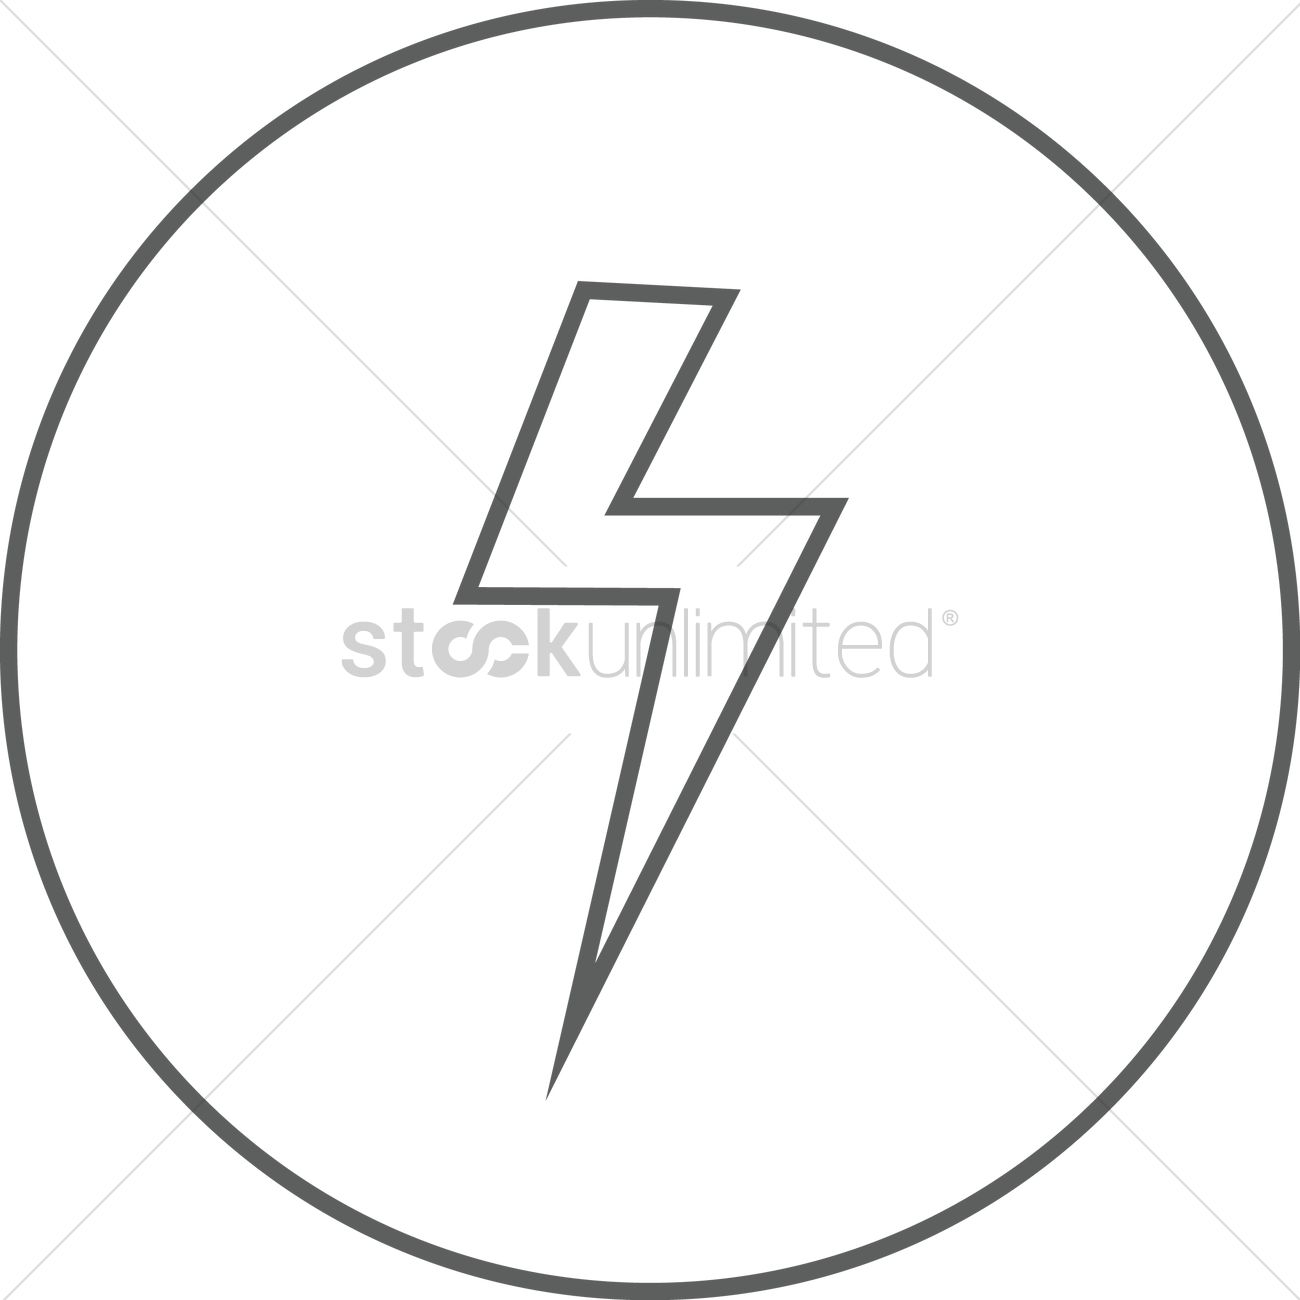 thunder vector image 1370551 stockunlimited stockunlimited